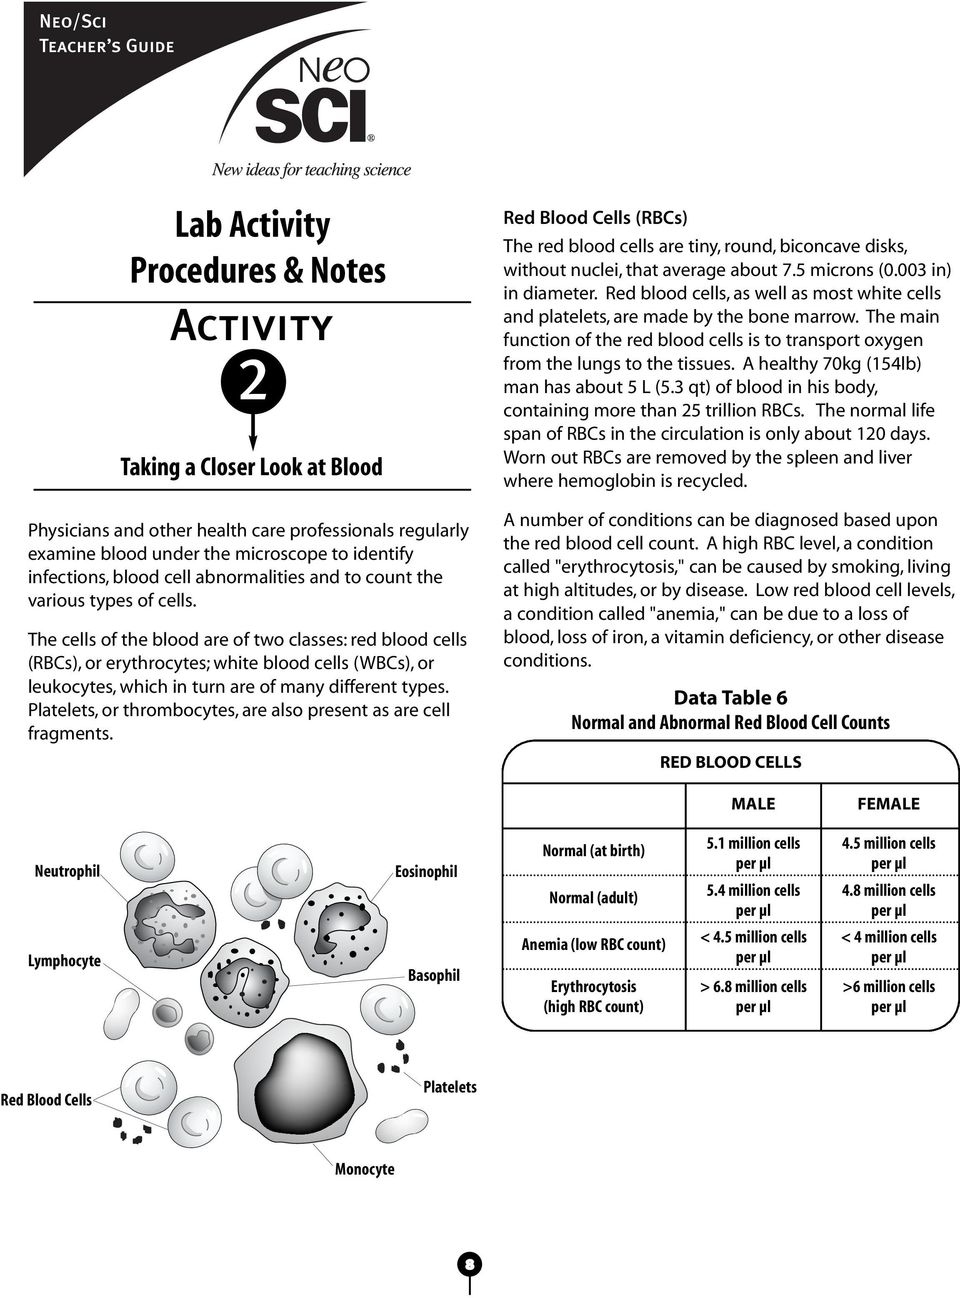 The cells of the blood are of two classes: red blood cells (RBCs), or erythrocytes; white blood cells (WBCs), or leukocytes, which in turn are of many different types.